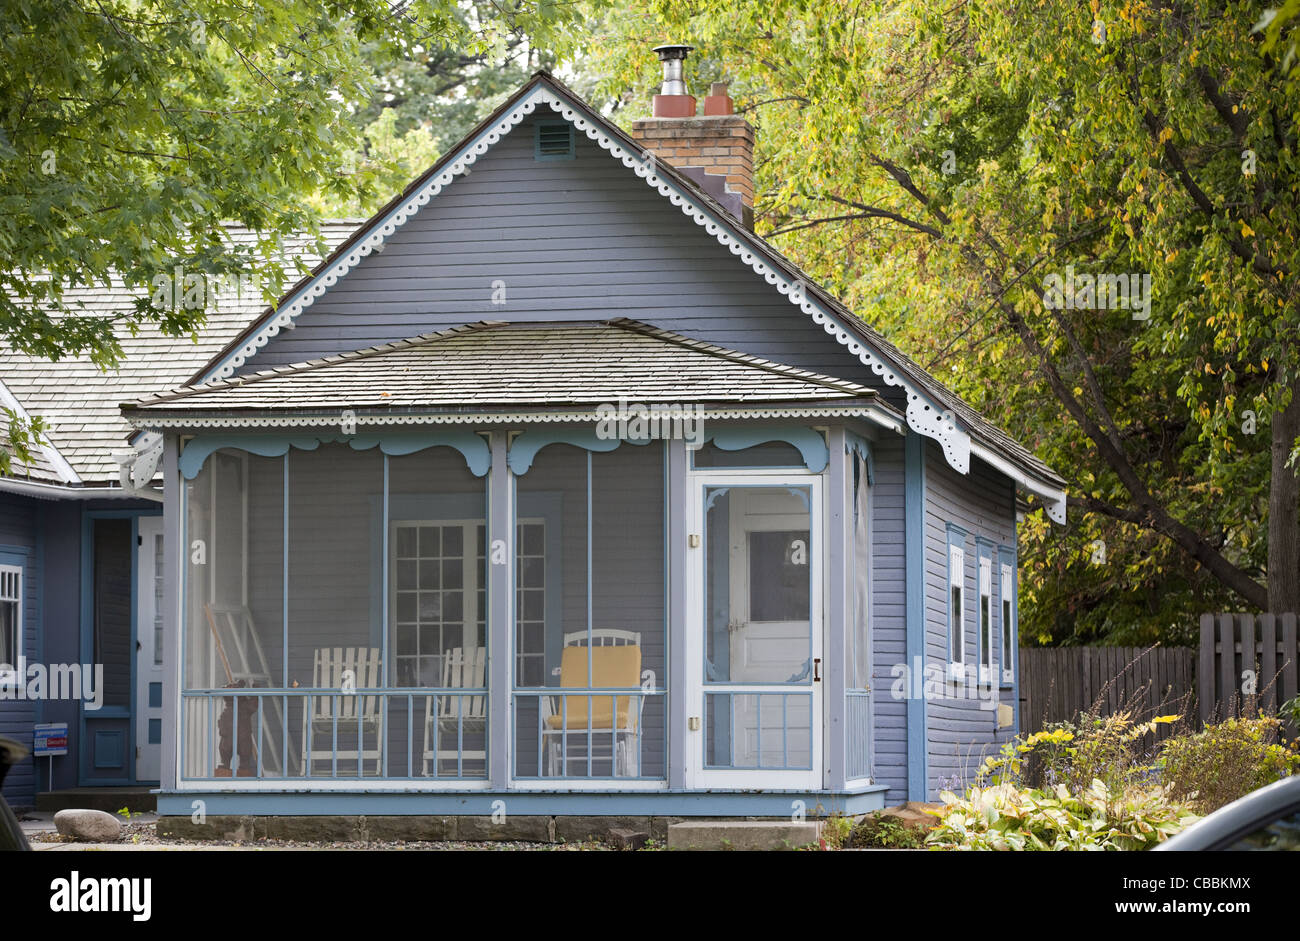 The Loren L. Chadwick Cottage is located in the Linden Hills neighborhood of Minneapolis, Minnesota. - Stock Image